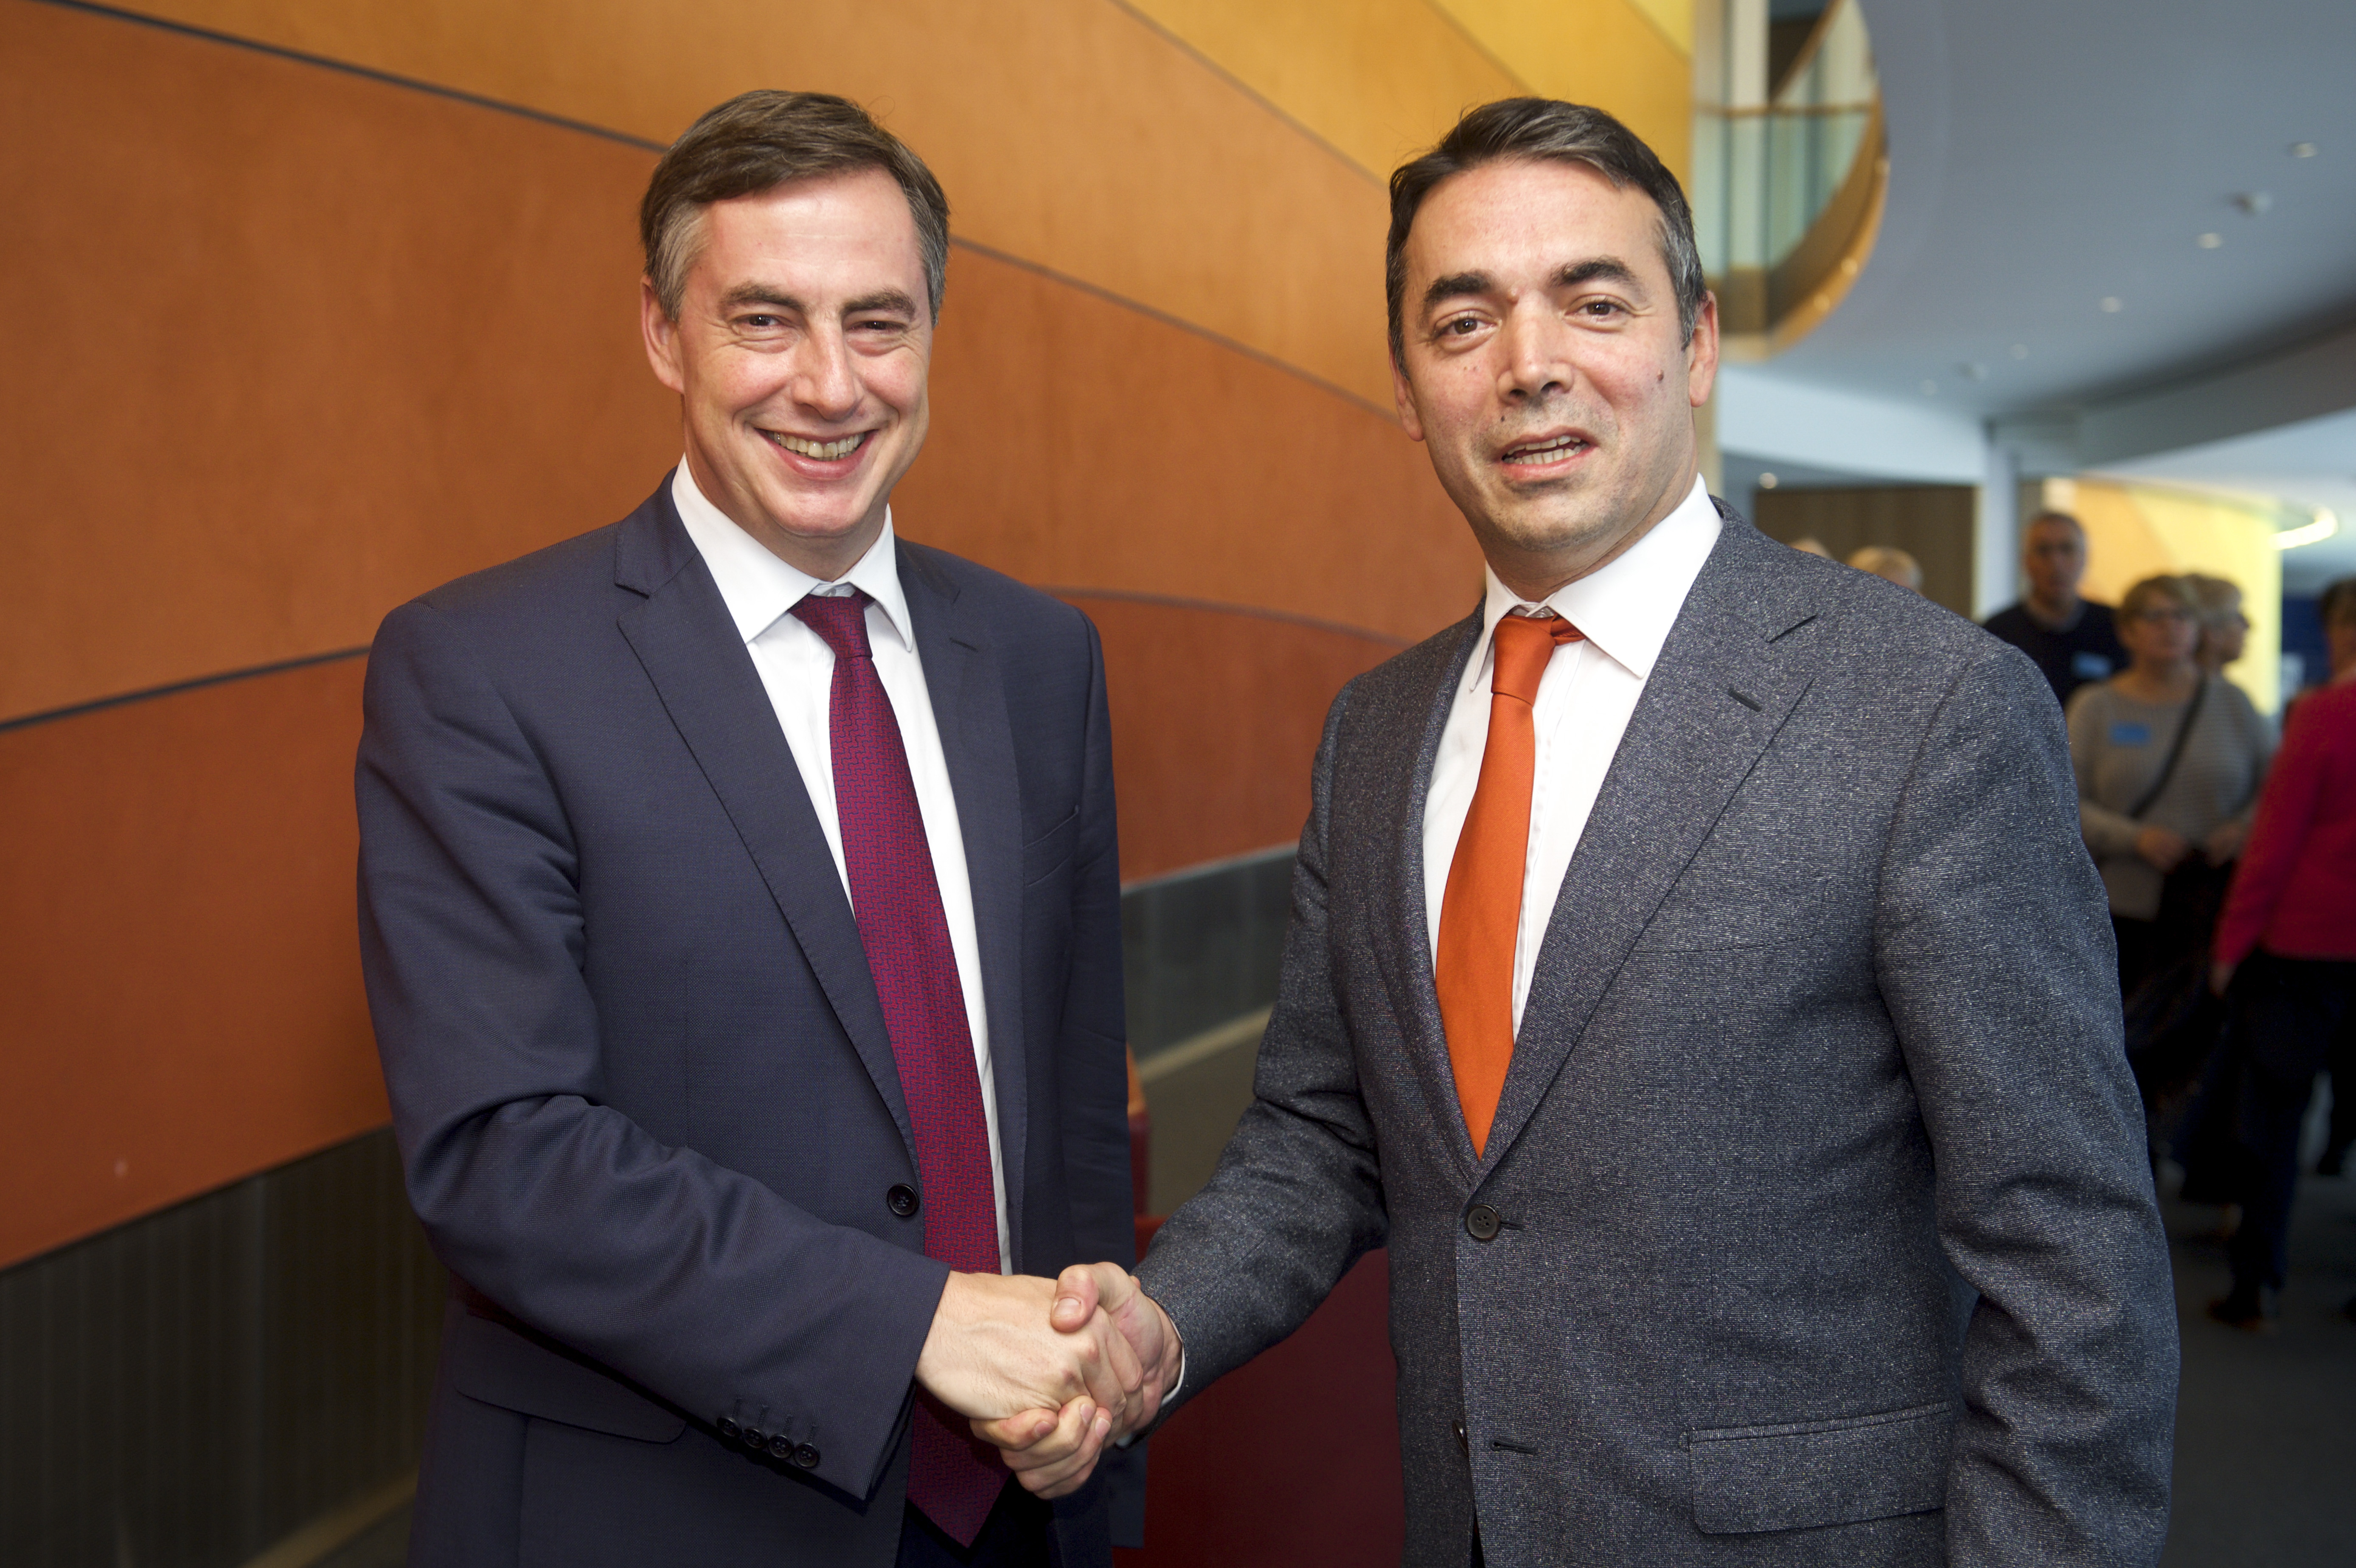 David McAllister and Nikola Dimitrov; AFET committee meeting - Exchange of views with Foreign Minister of the former Yugoslav Republic of Macedonia; Photo: European Union